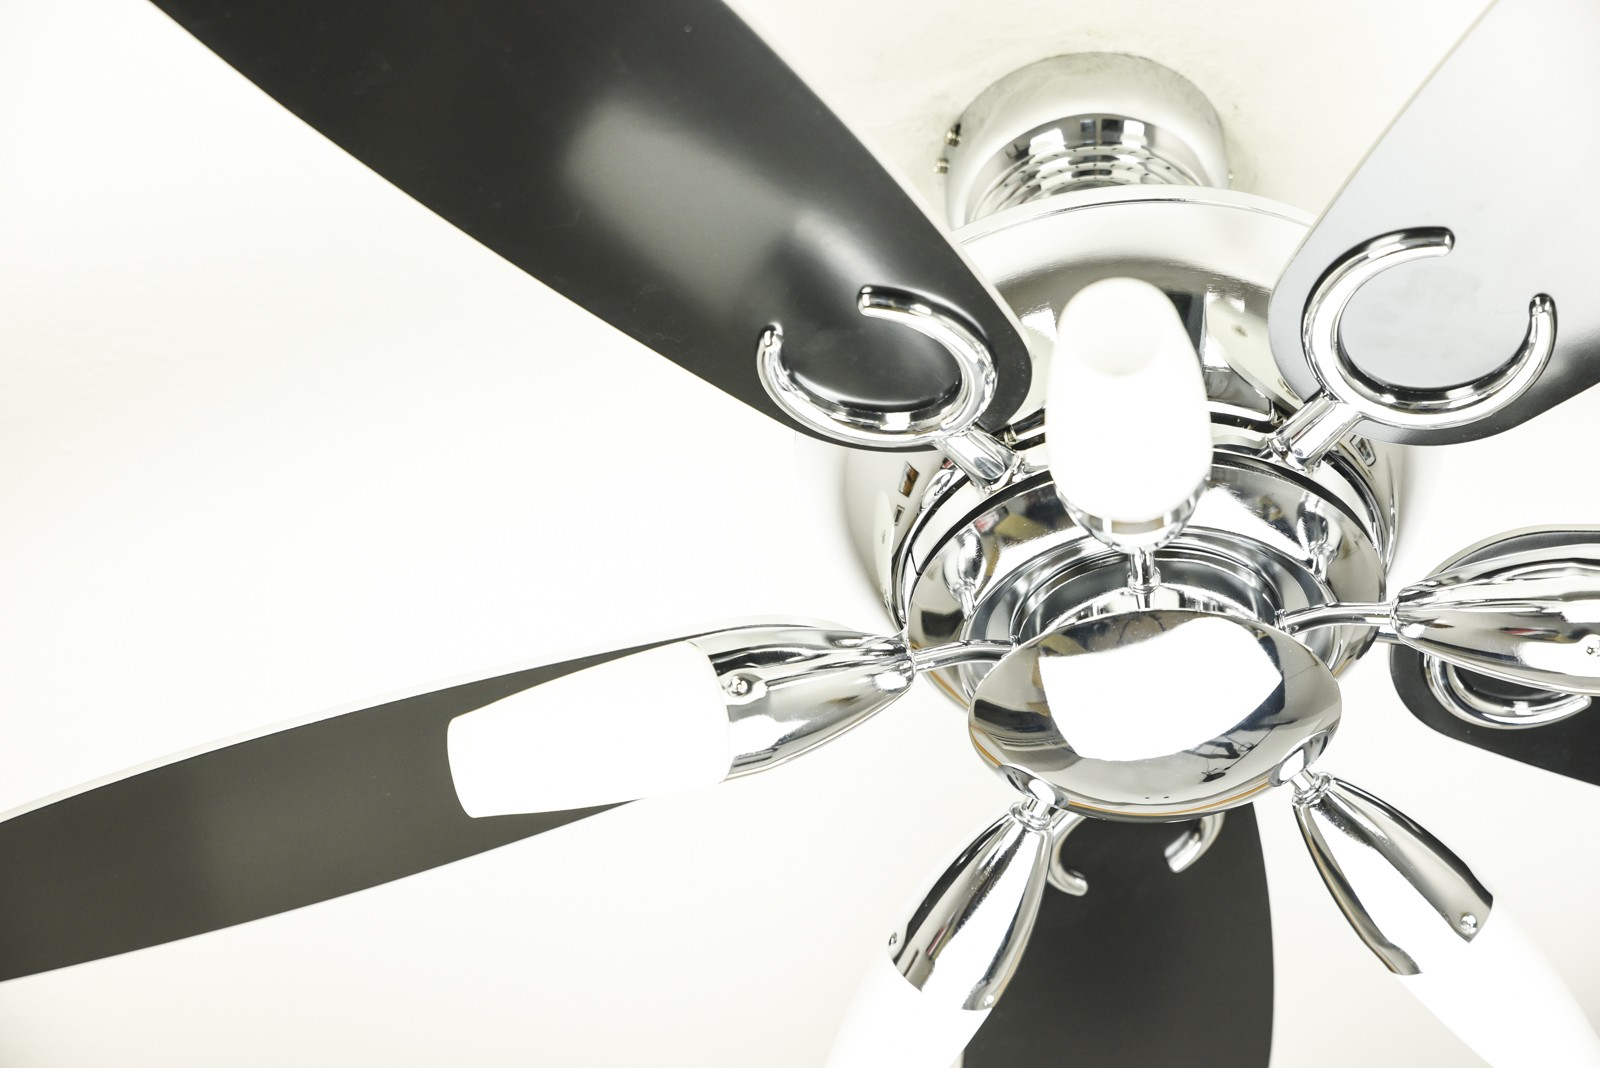 Westinghouse ceiling fan arius 132 cm 52 with remote control westinghouse ceiling fan arius 132 cm 52quot with remote control mozeypictures Choice Image